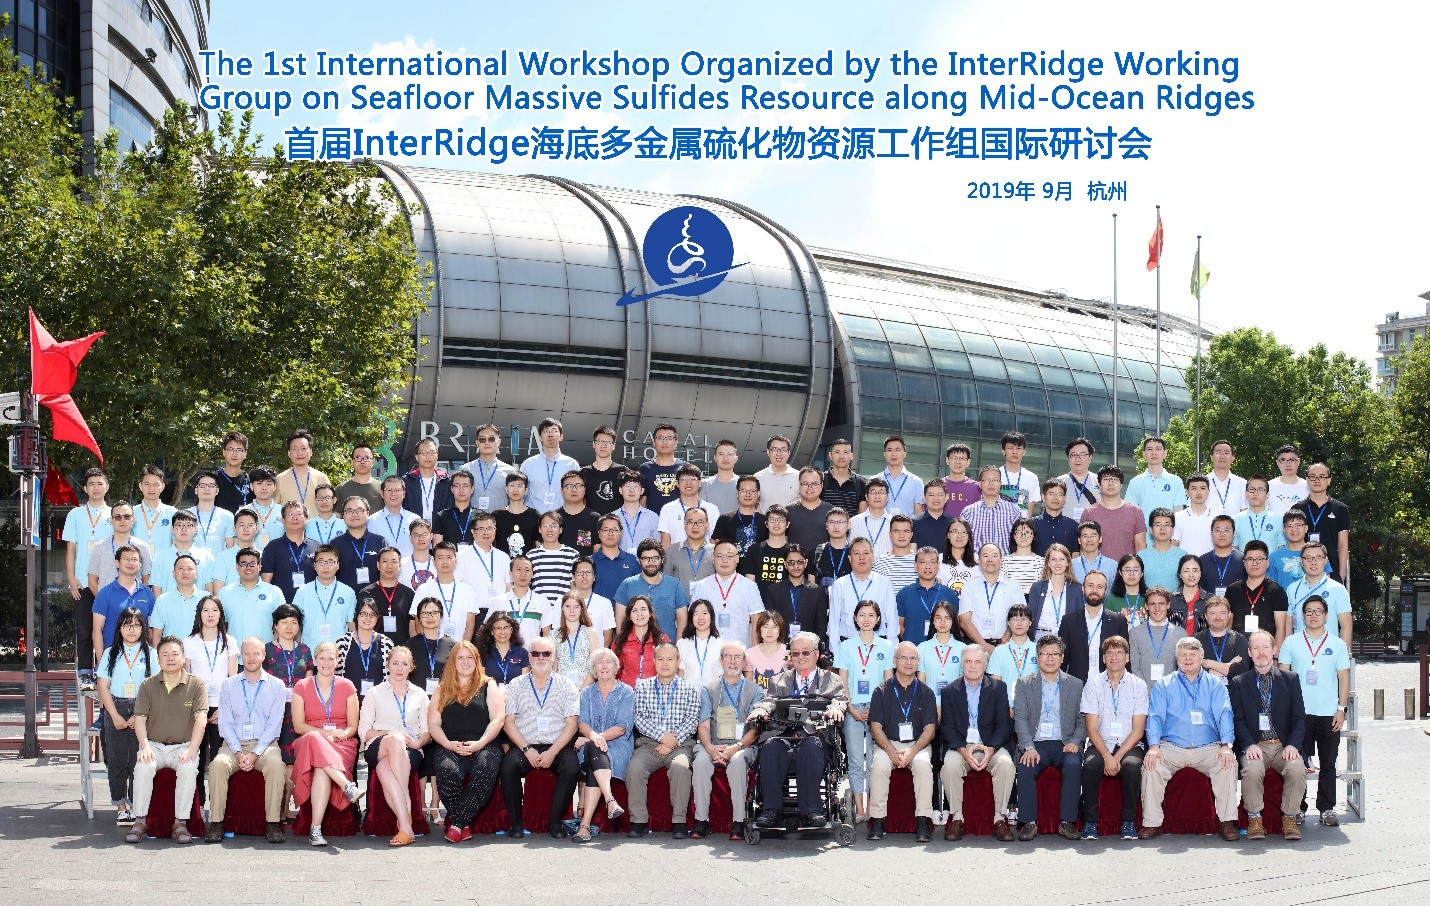 The 1st International Workshop on Hydrothermal ore-forming processes and the fate of SMS deposits along slow and ultraslow spreading MOR